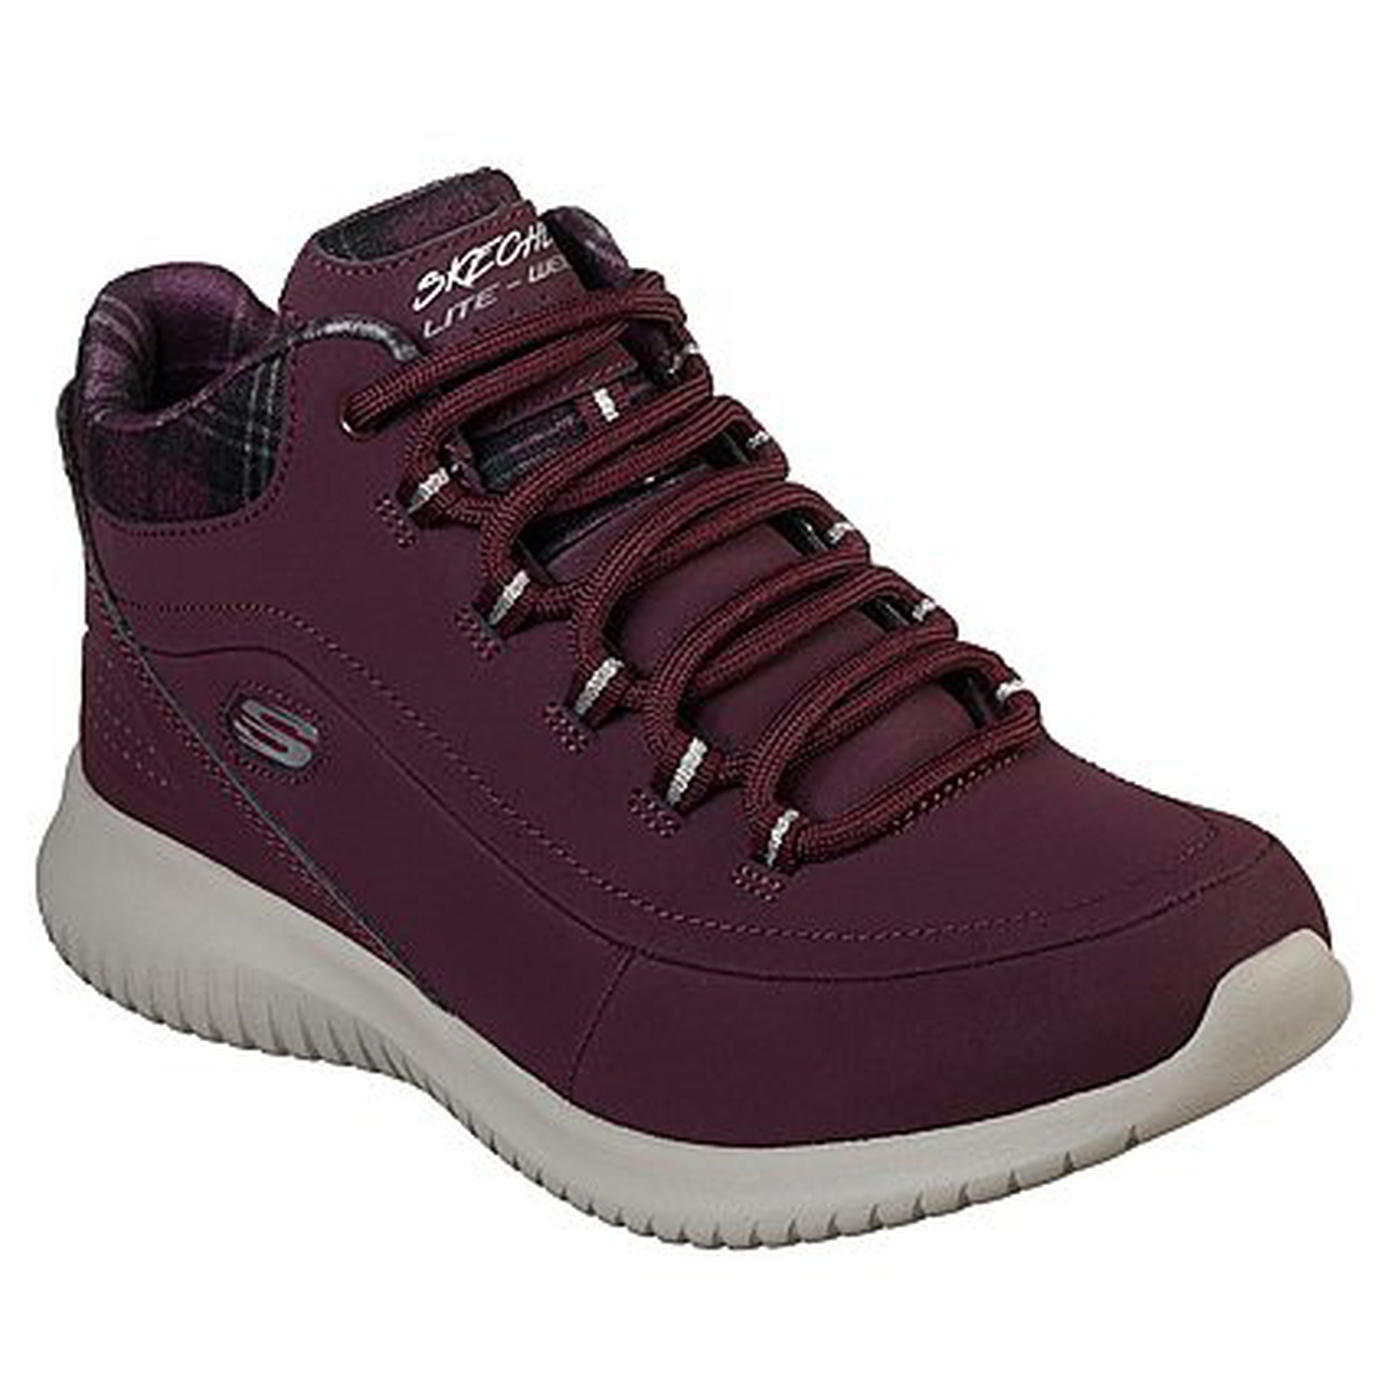 Details about Skechers Womens Ladies Ultra Flex Just Chill Purple Chukka  Boots Trainers Shoes